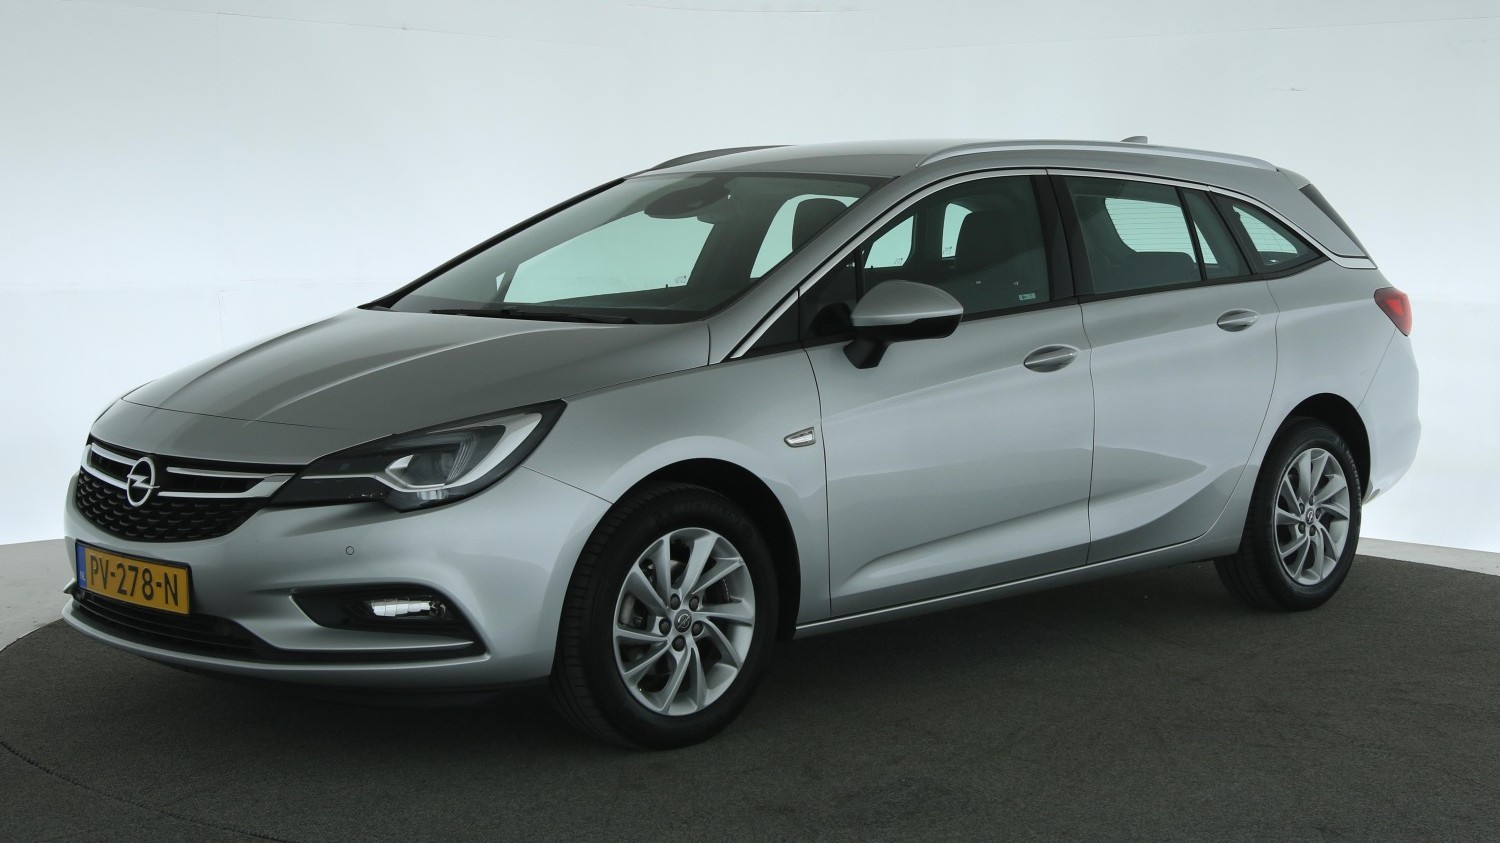 Opel Astra Station 2017 PV-278-N 1